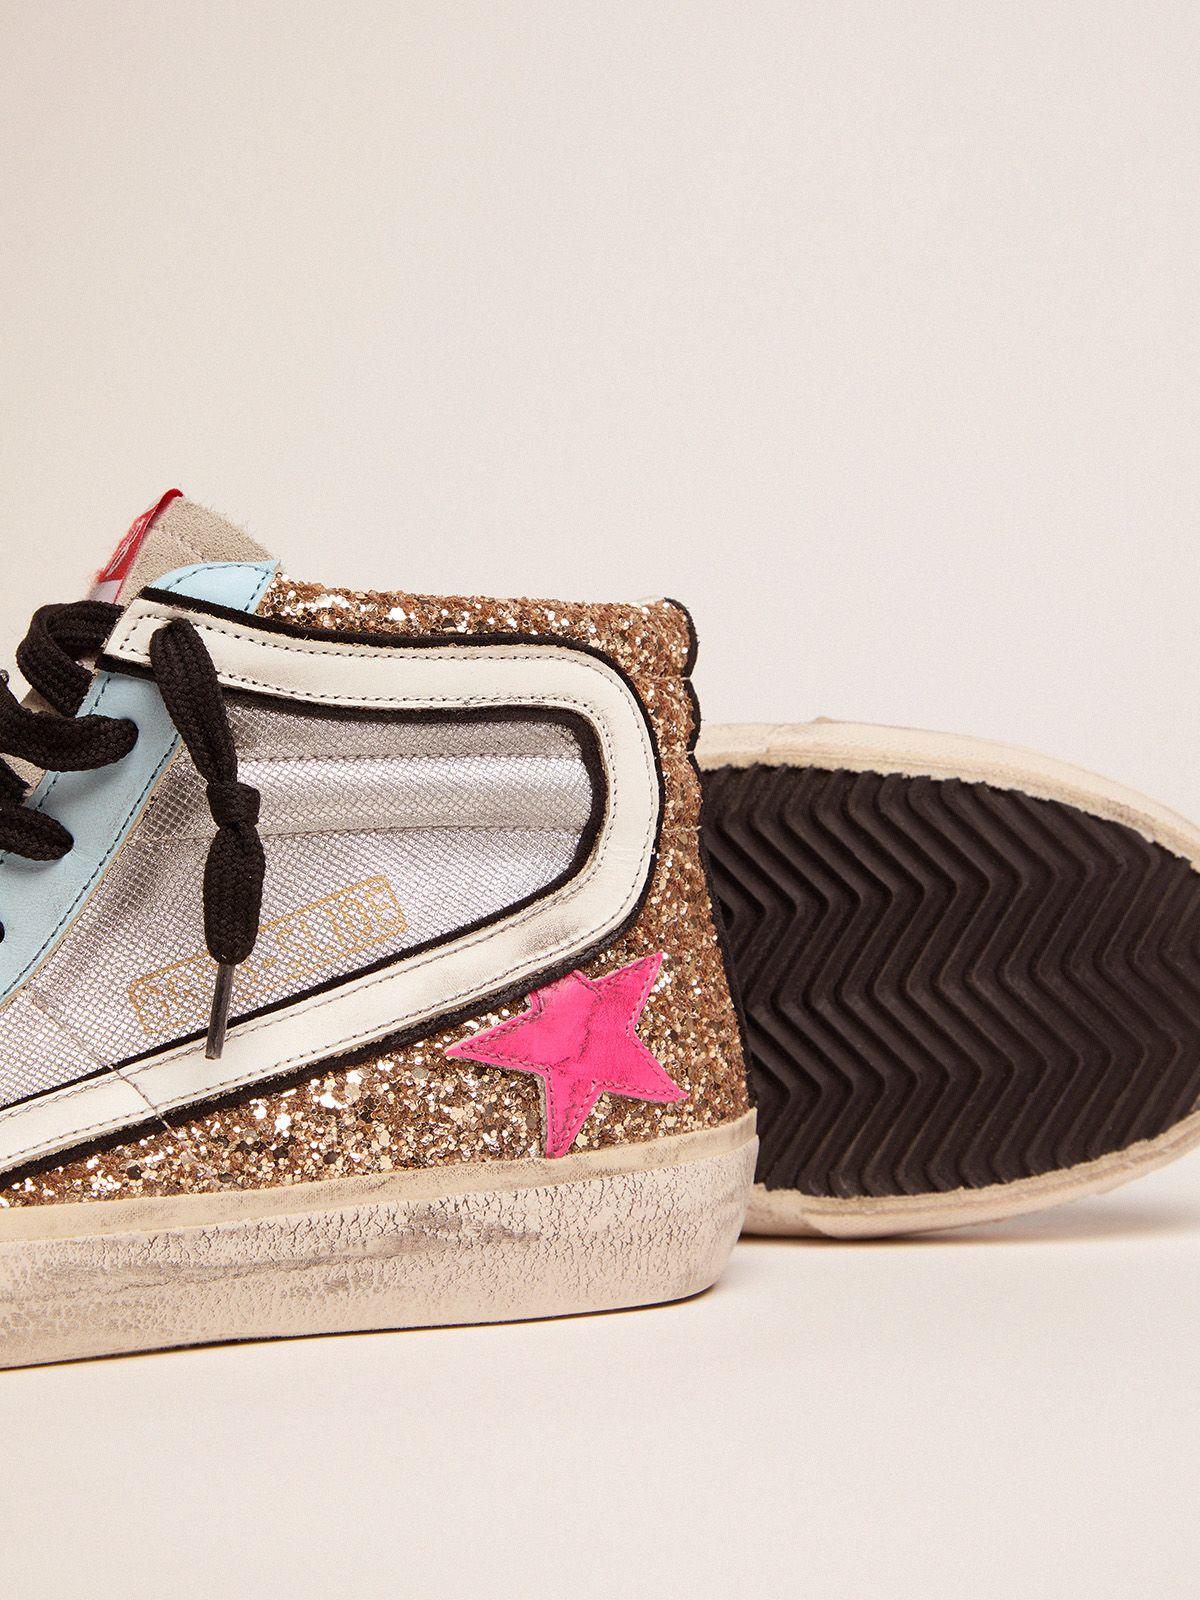 Slide LTD sneakers with glitter and fuchsia star 2